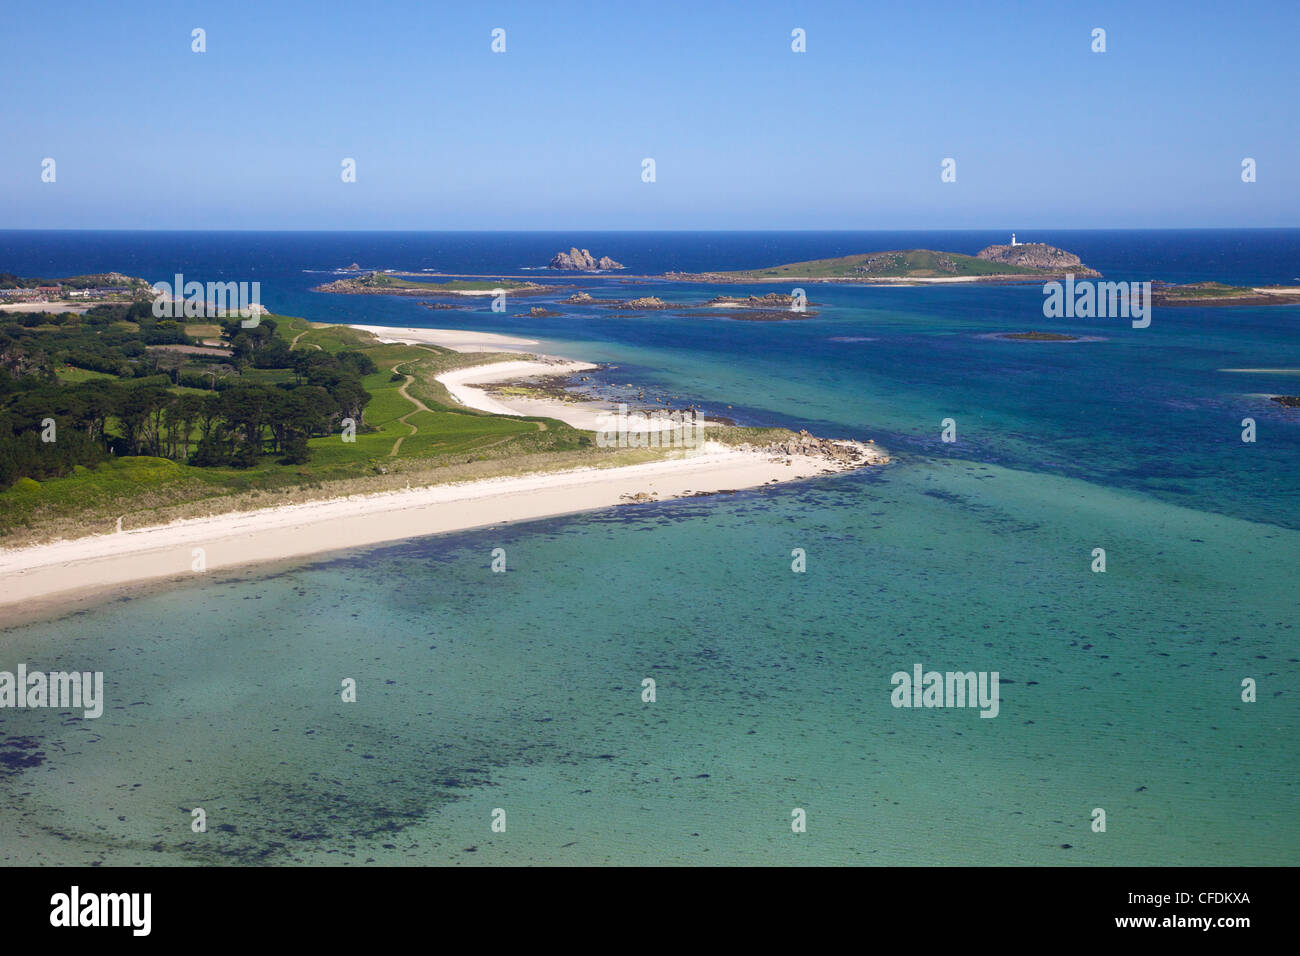 Aerial view of Tresco, Isles of Scilly, England, United Kingdom, Europe - Stock Image